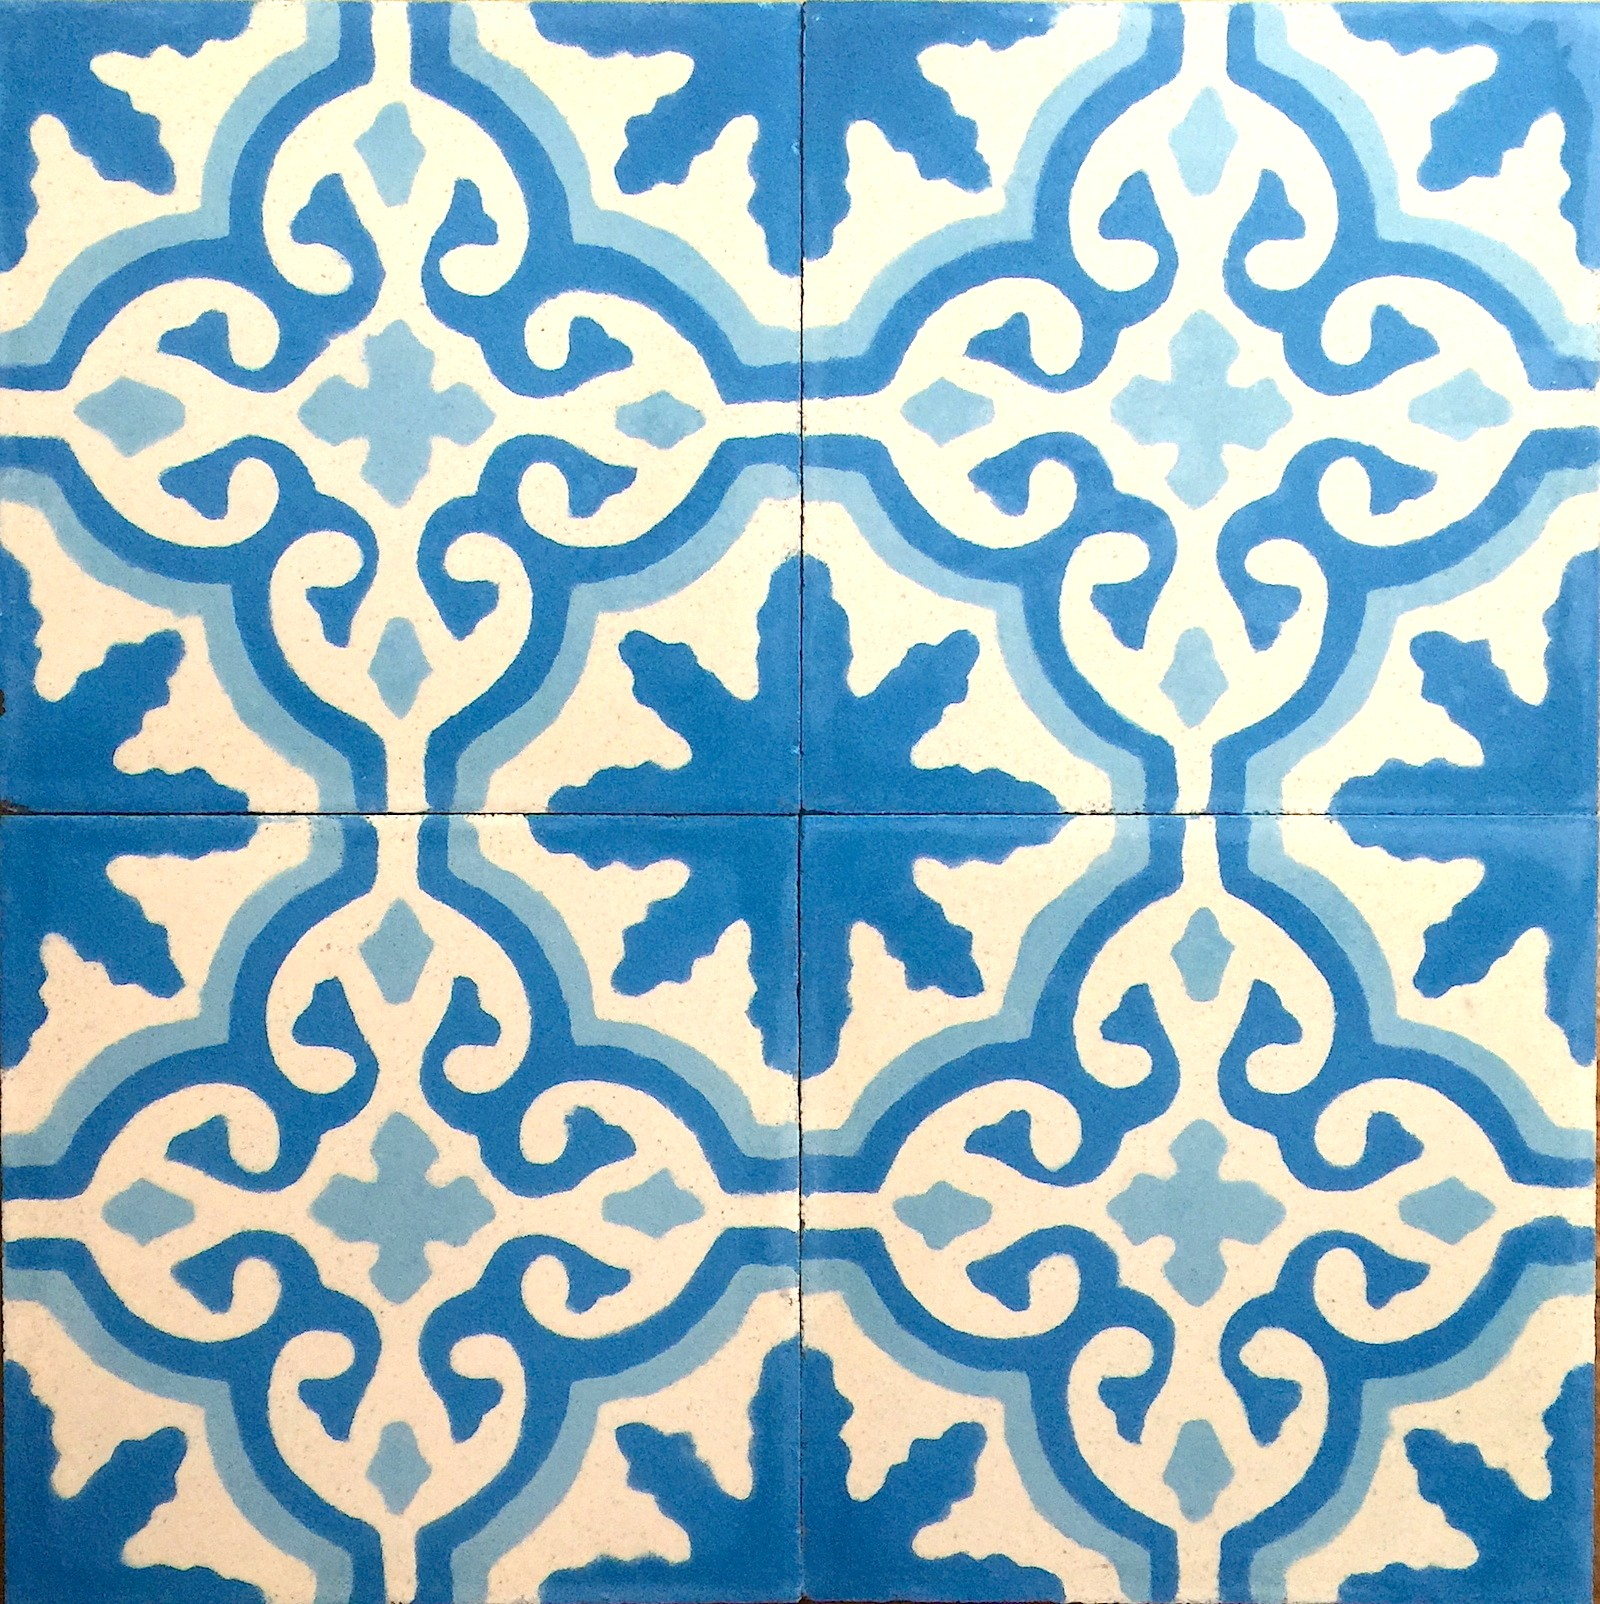 Modele De Carrelage Sol cement tiles 1sqm model flore-bleu - carrelage-mosaique